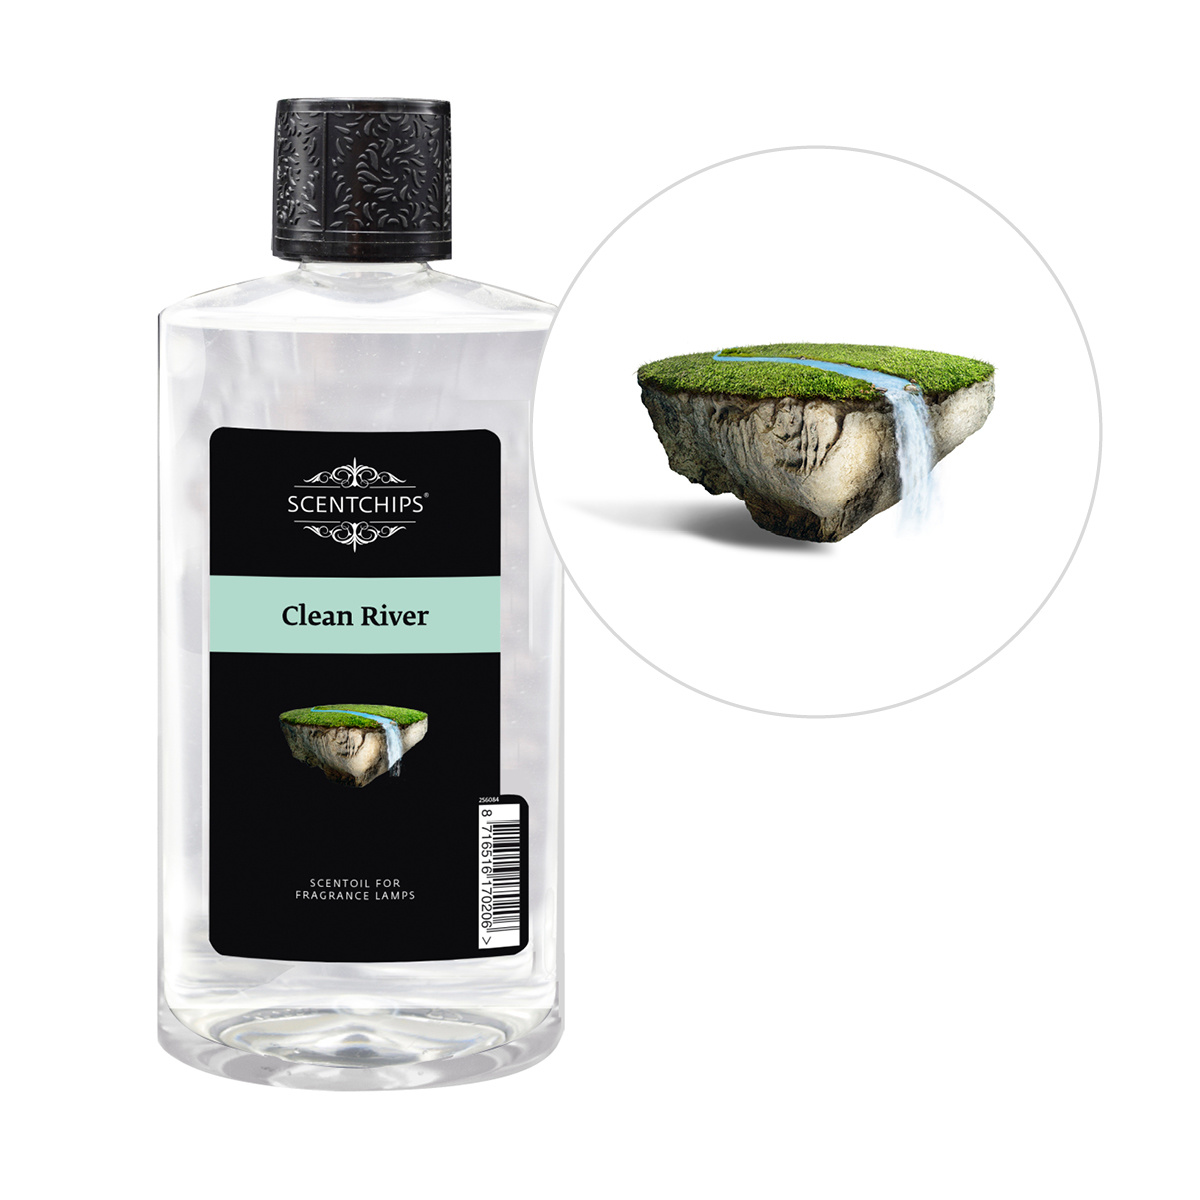 Clean River fragrance oil ScentOil